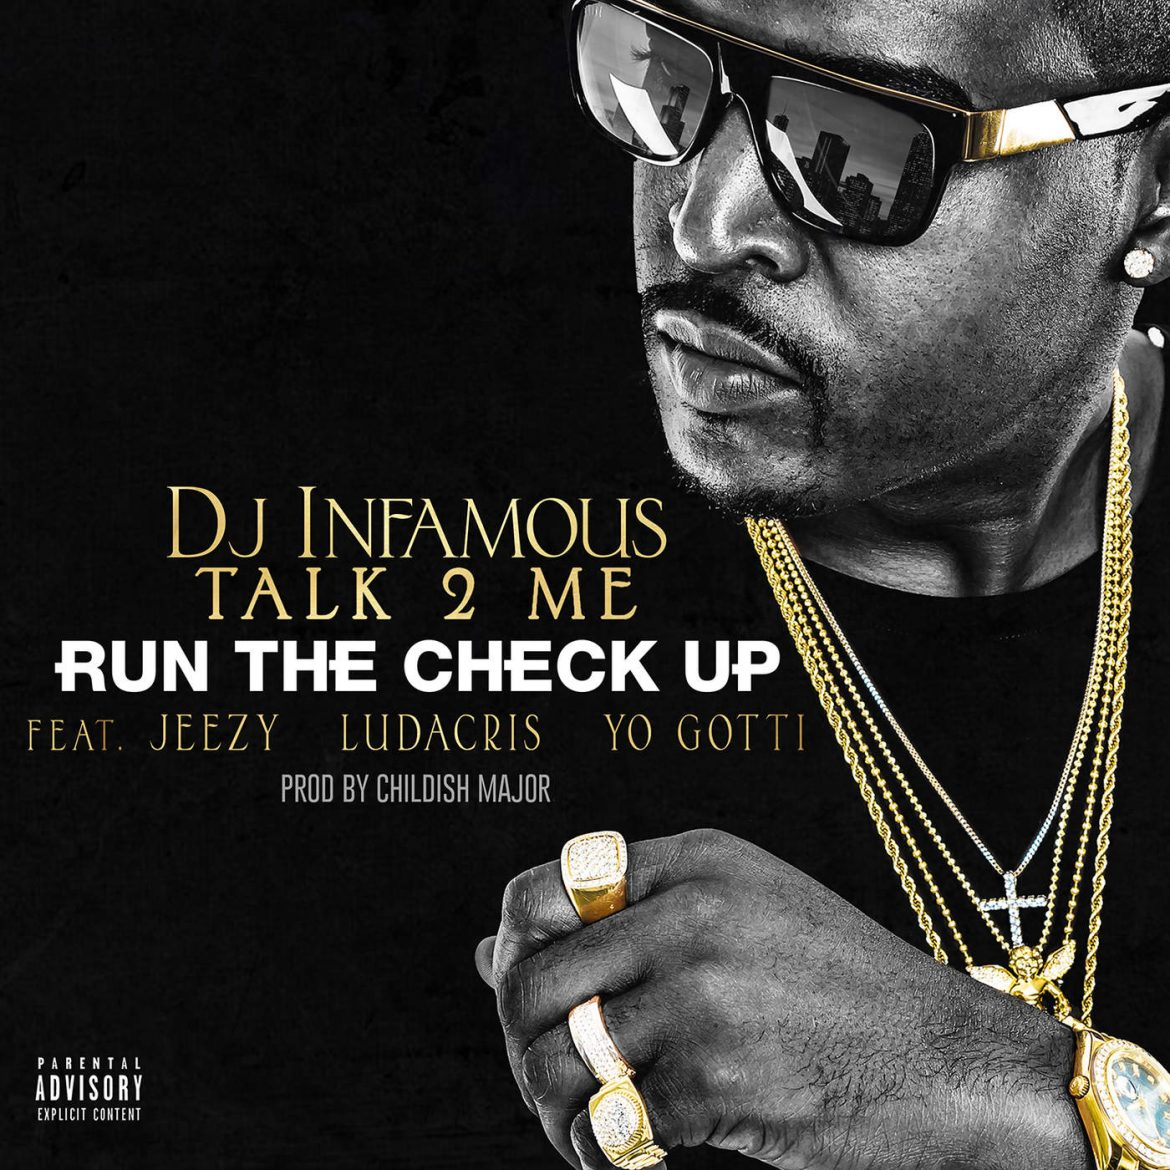 DJ infamous run the checkup